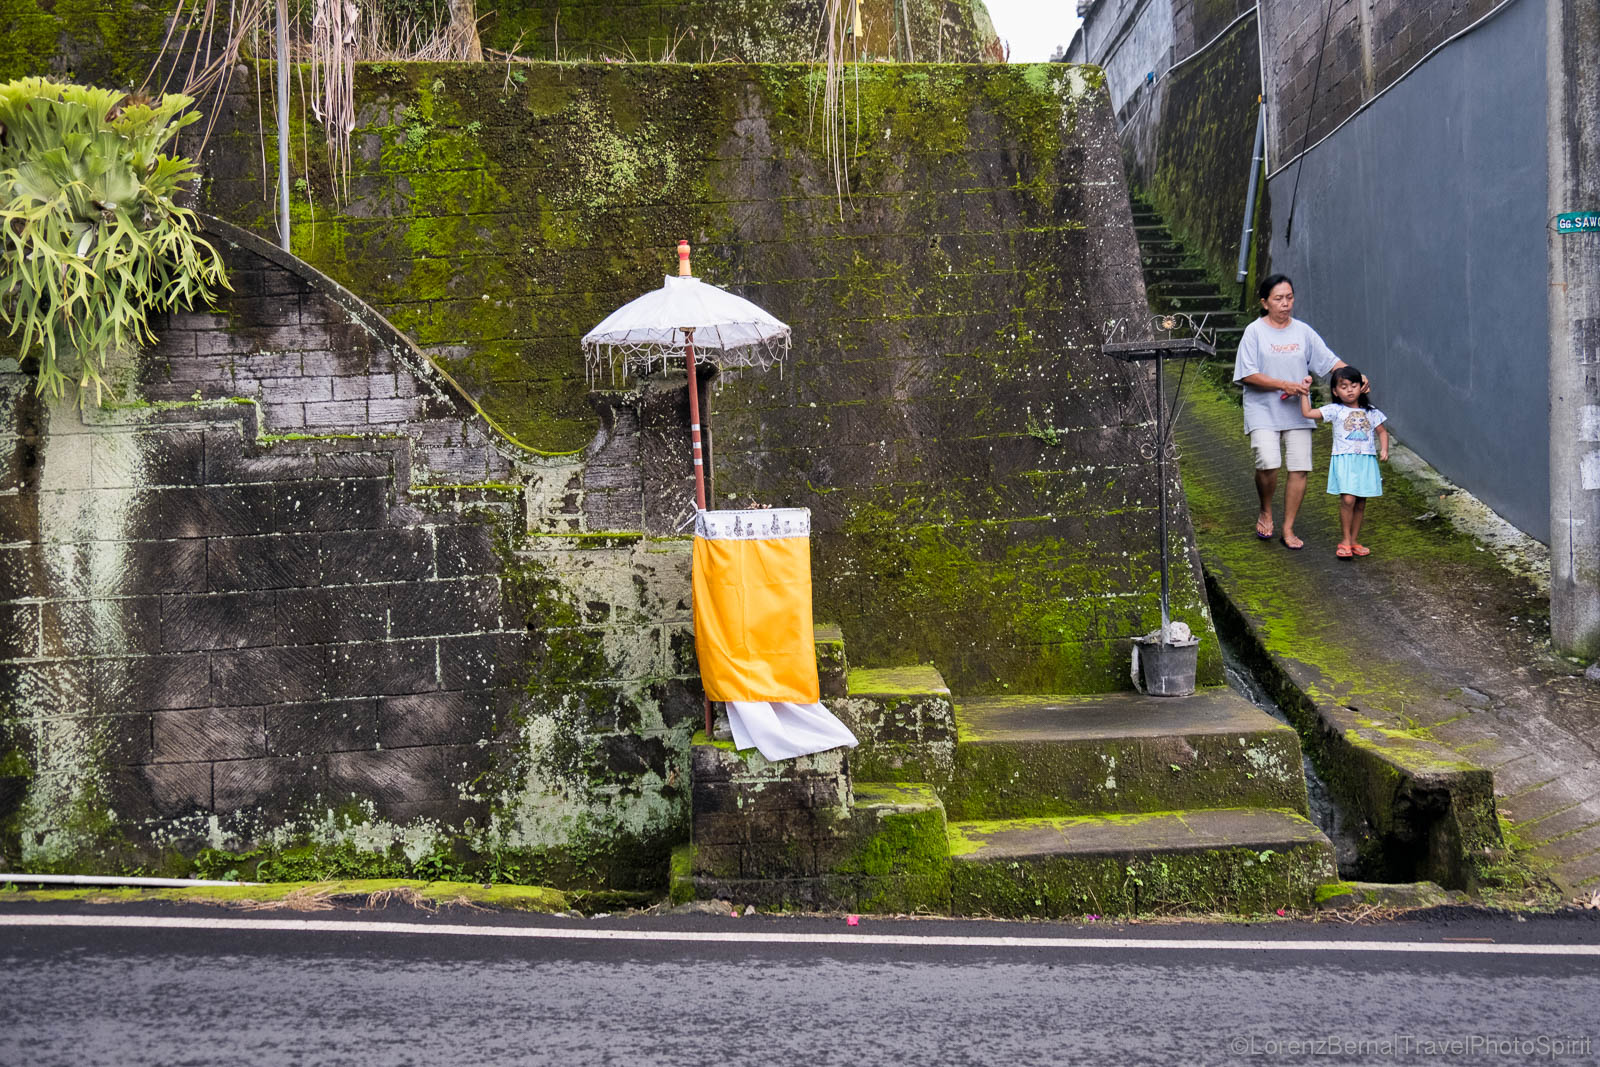 Street detail in Bali : a small altar temple where locals bring water, flower and rice offerings to the Gods, Indonesia.